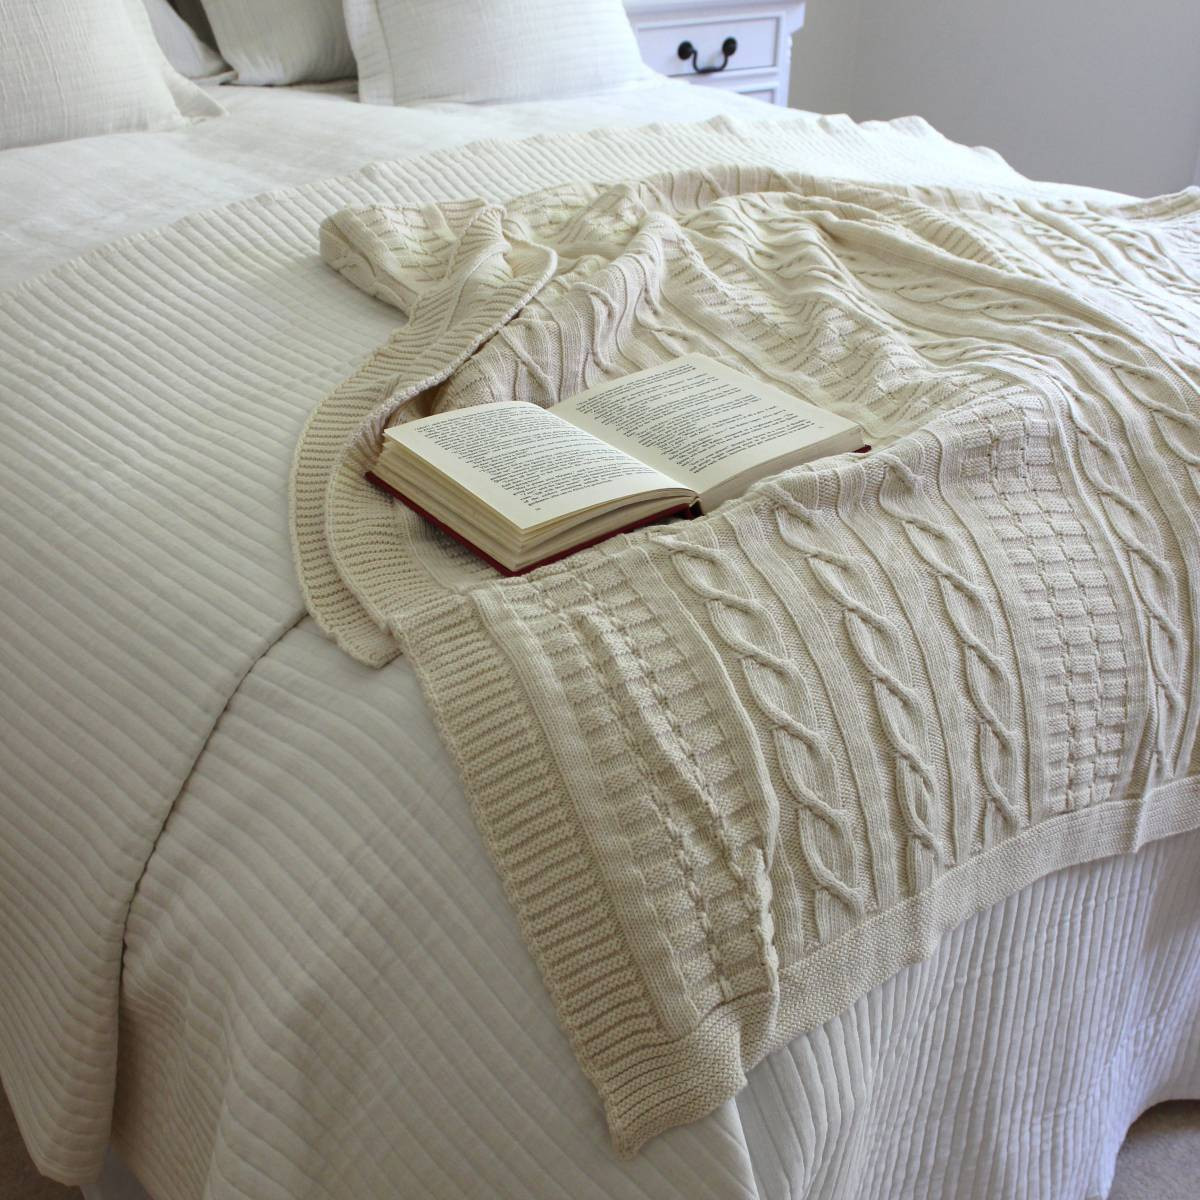 Cable Knit Blanket Inspirational Cable Knit Throw Cotton Cable Knit Throw Cotton Knit Of Incredible 49 Pictures Cable Knit Blanket